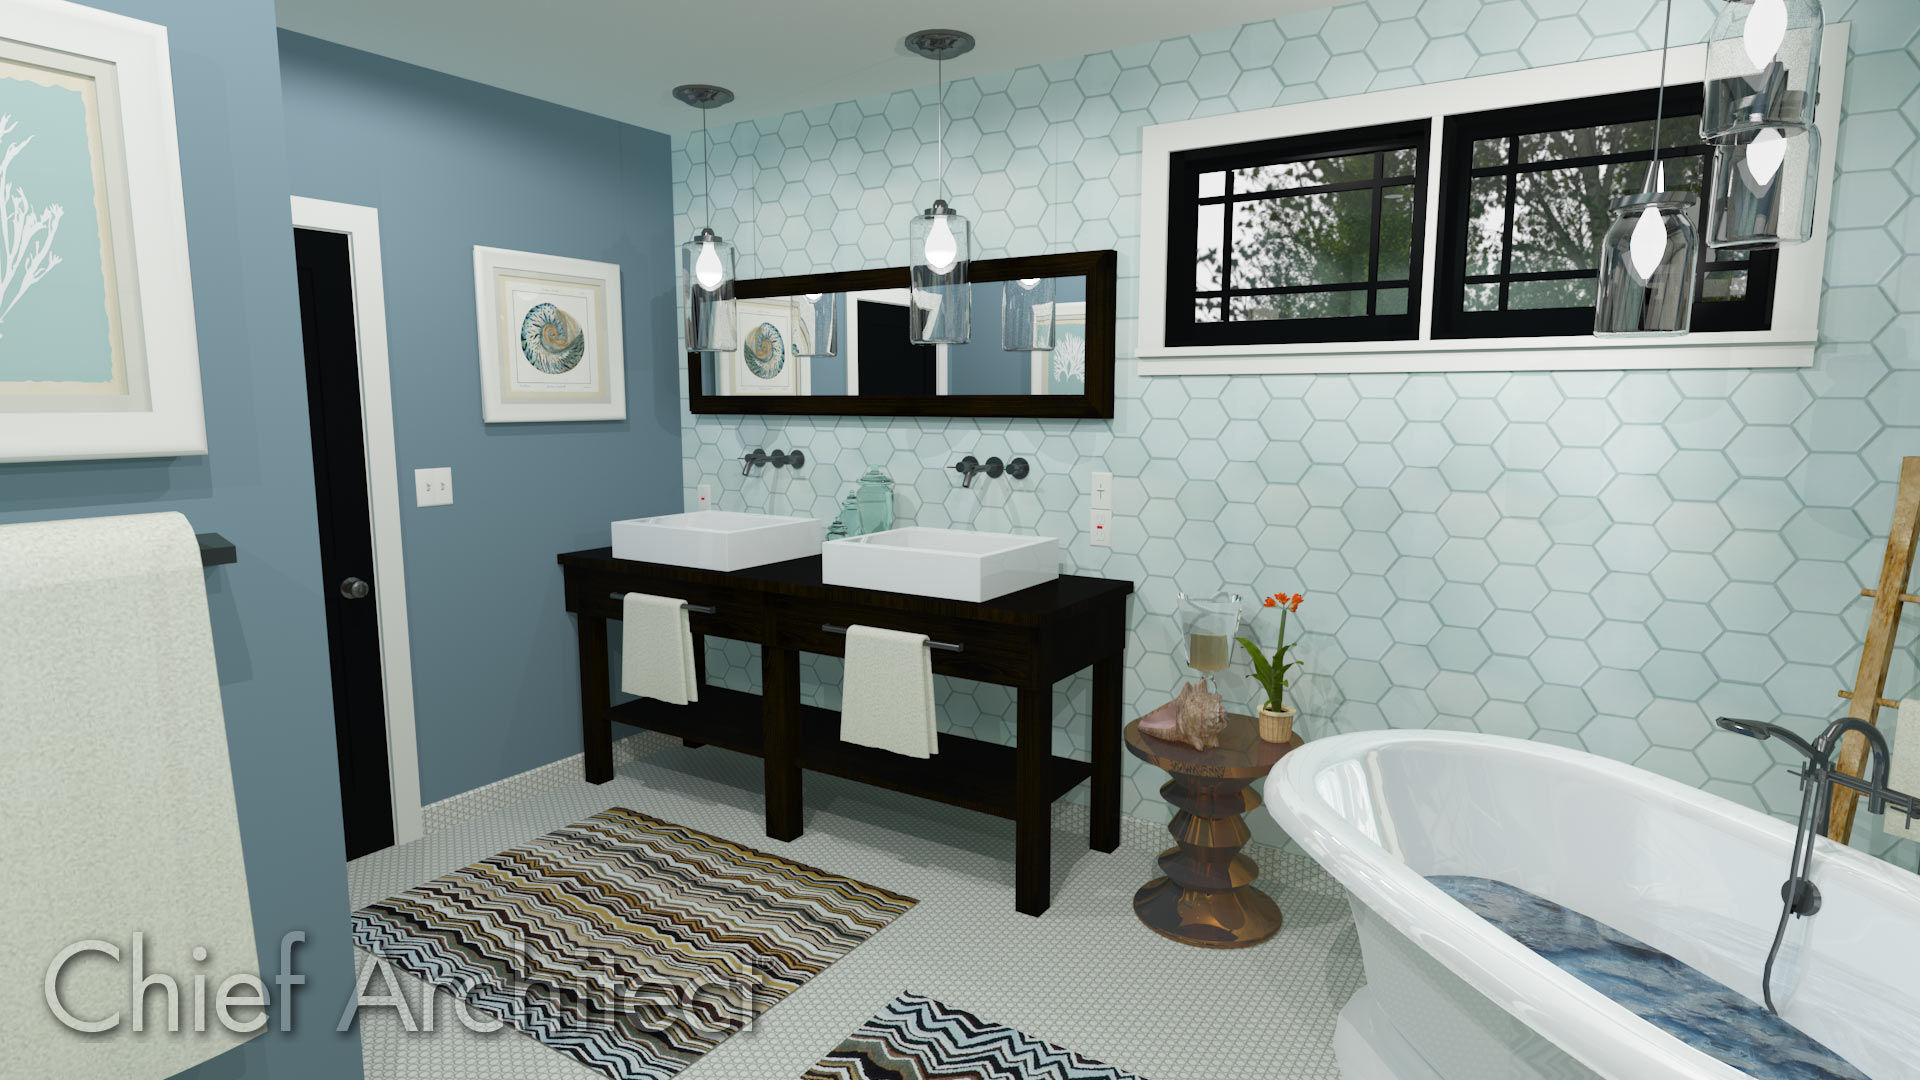 img class  u imageCenter   src  https   cloud chiefarchitect com 1 samples kitchen bath modern bungalow  bath thumb jpg  alt  This blue bathroom looks as. Chief Architect Home Design Software   Samples Gallery